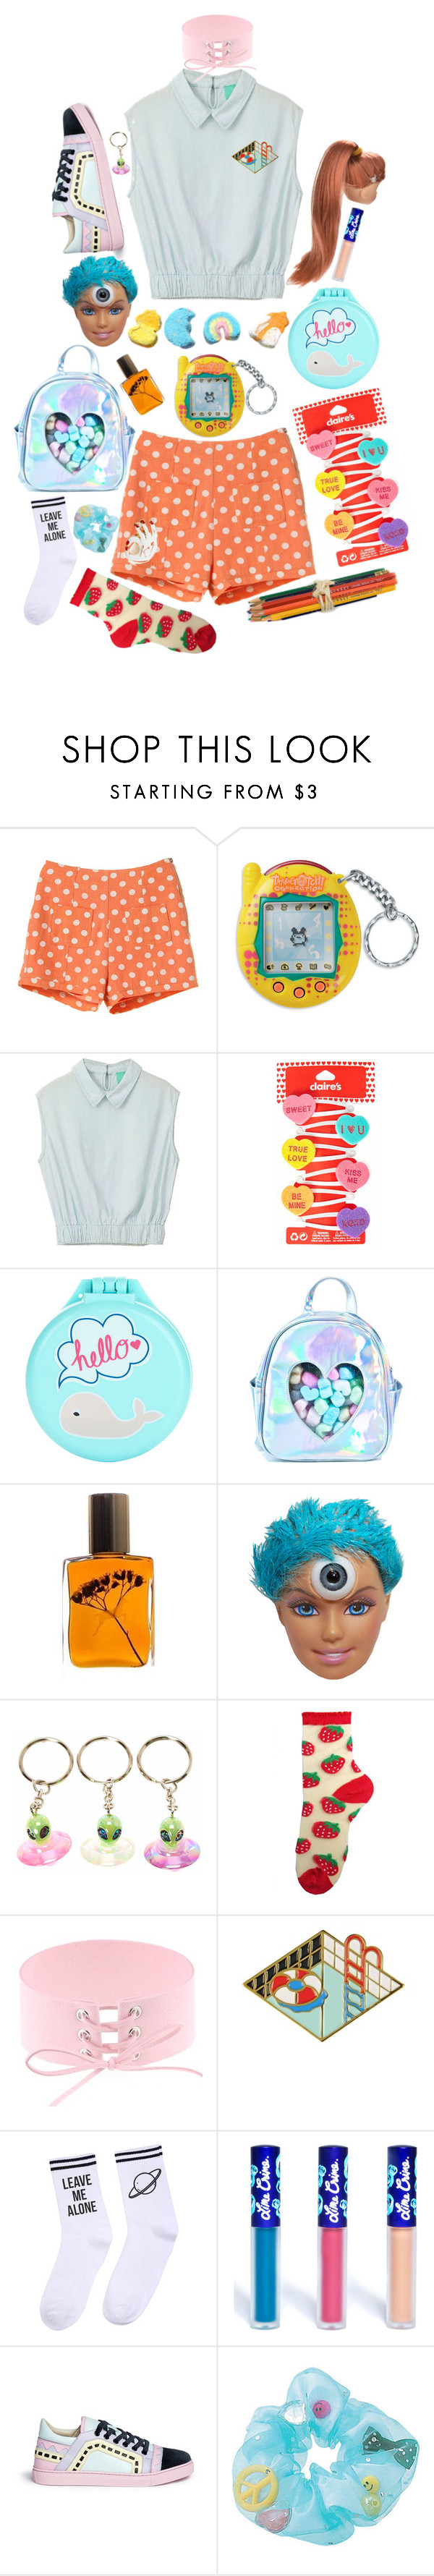 6417 webster -  And You Can Dress Like An Imbecile By Blackpool Liked On Polyvore Featuring